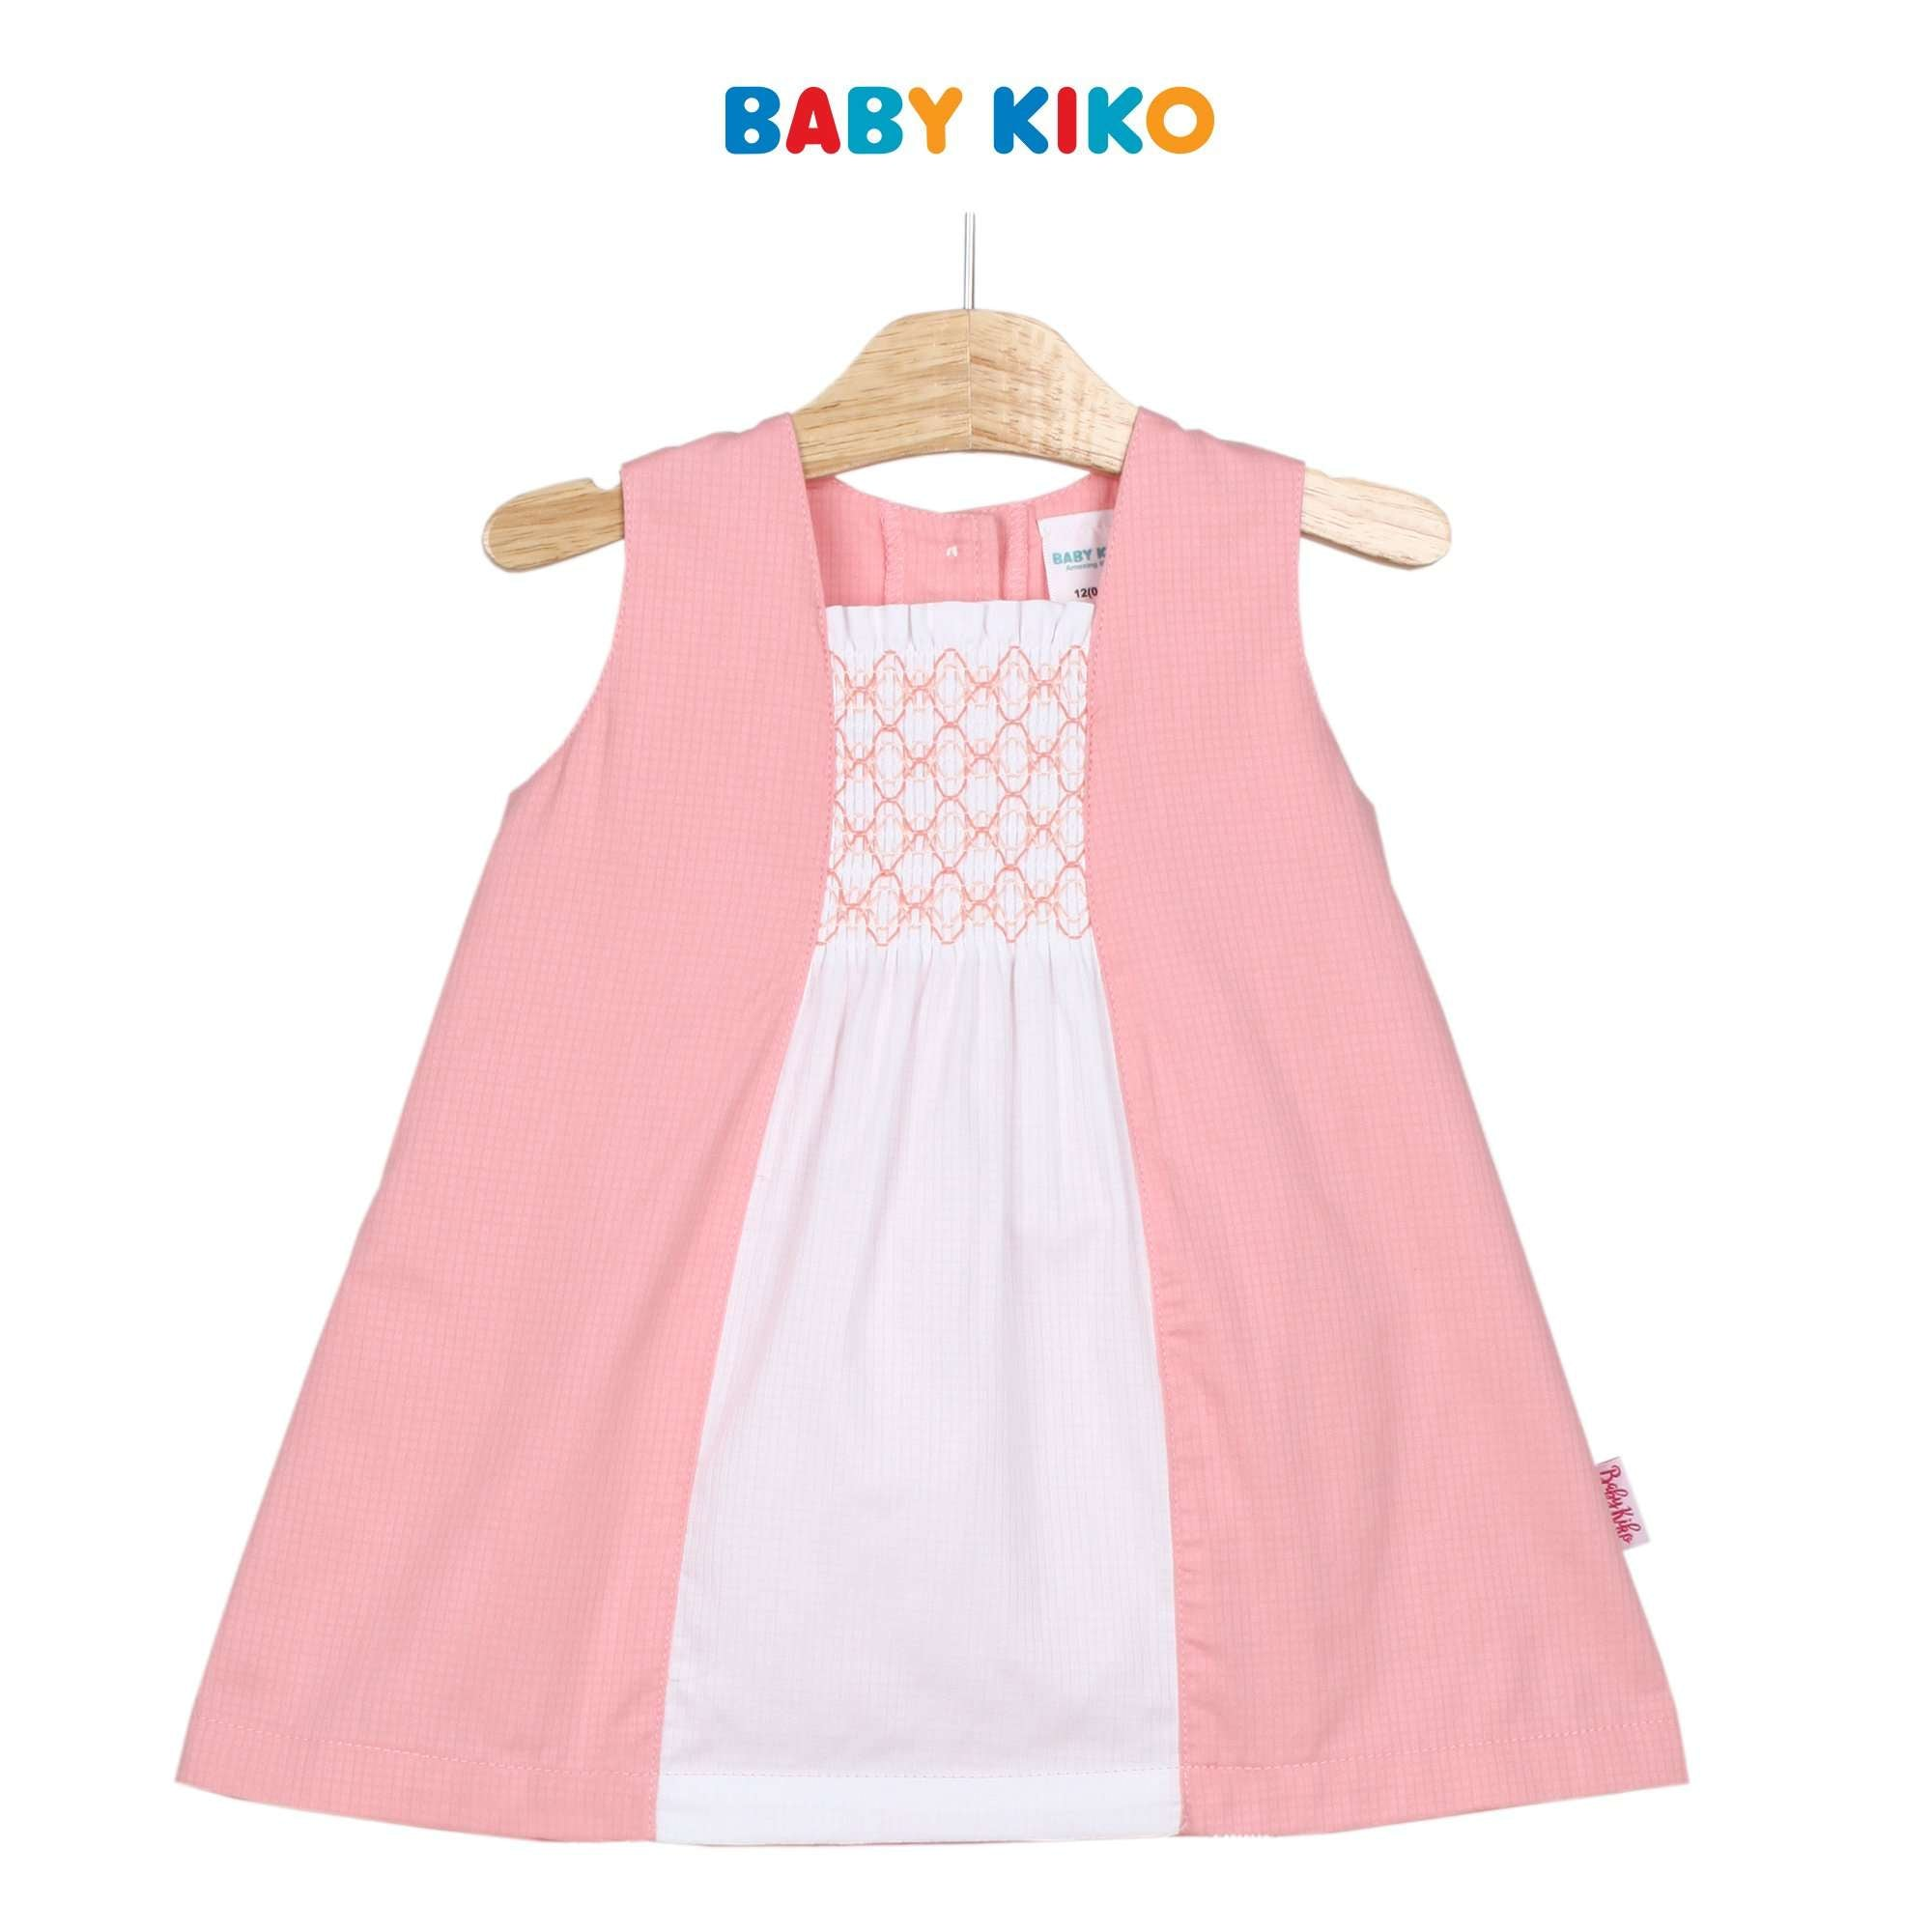 Baby KIKO Baby Girl Sleeveless Dress 310194-311 : Buy Baby KIKO online at CMG.MY